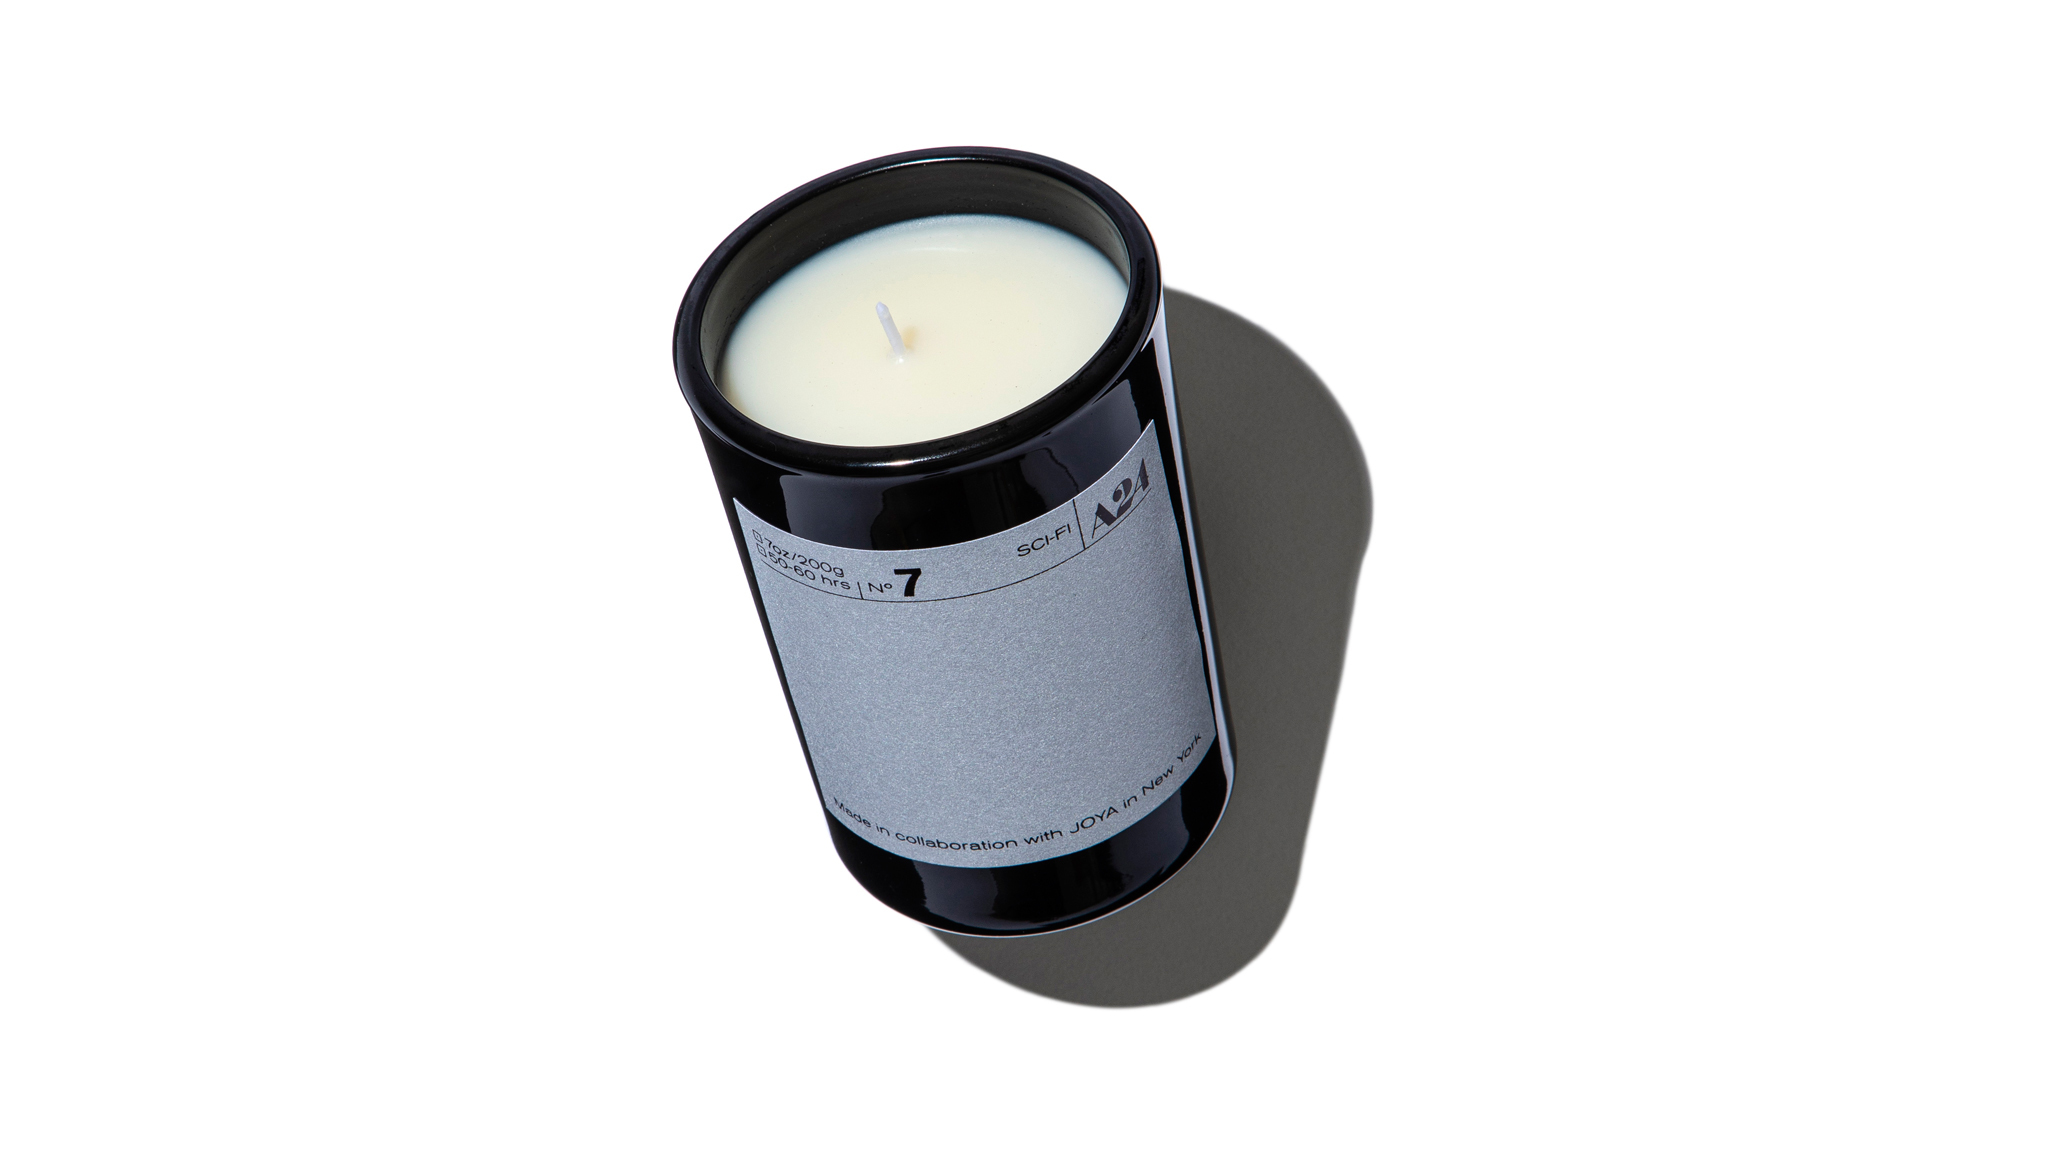 One of the A24 scented candles